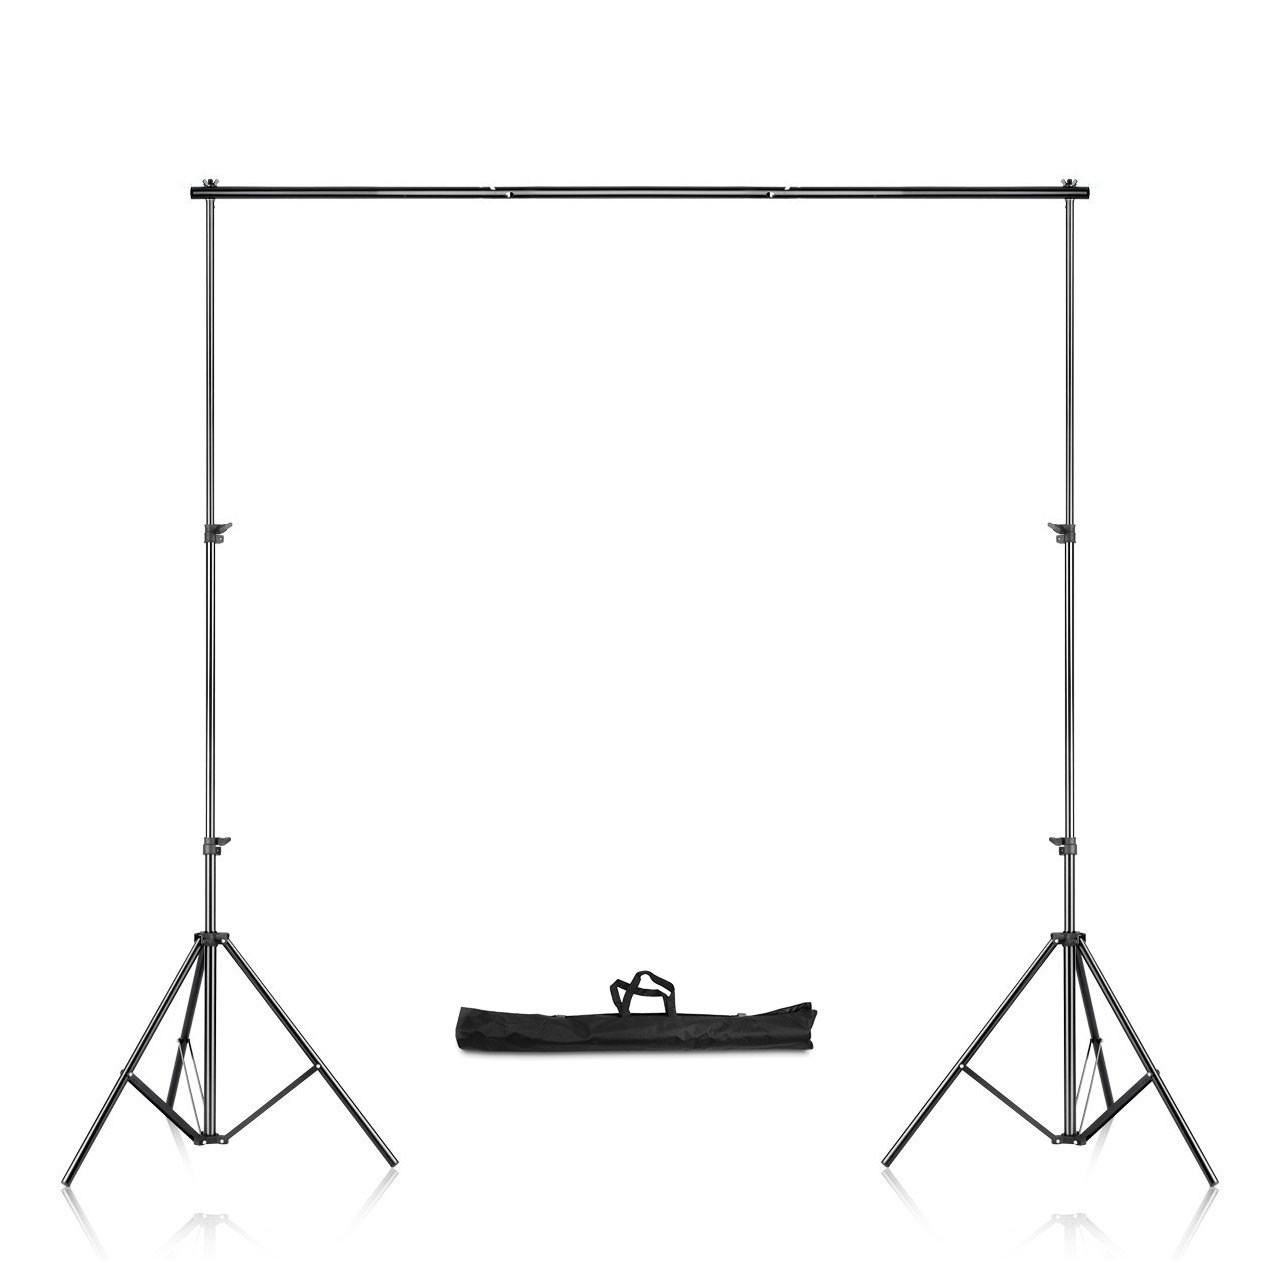 SaveOnMany 6.56 x 6.56 FT/ 2 x 2M Adjustable Background Support Stand Photo Backdrop Crossbar Kit